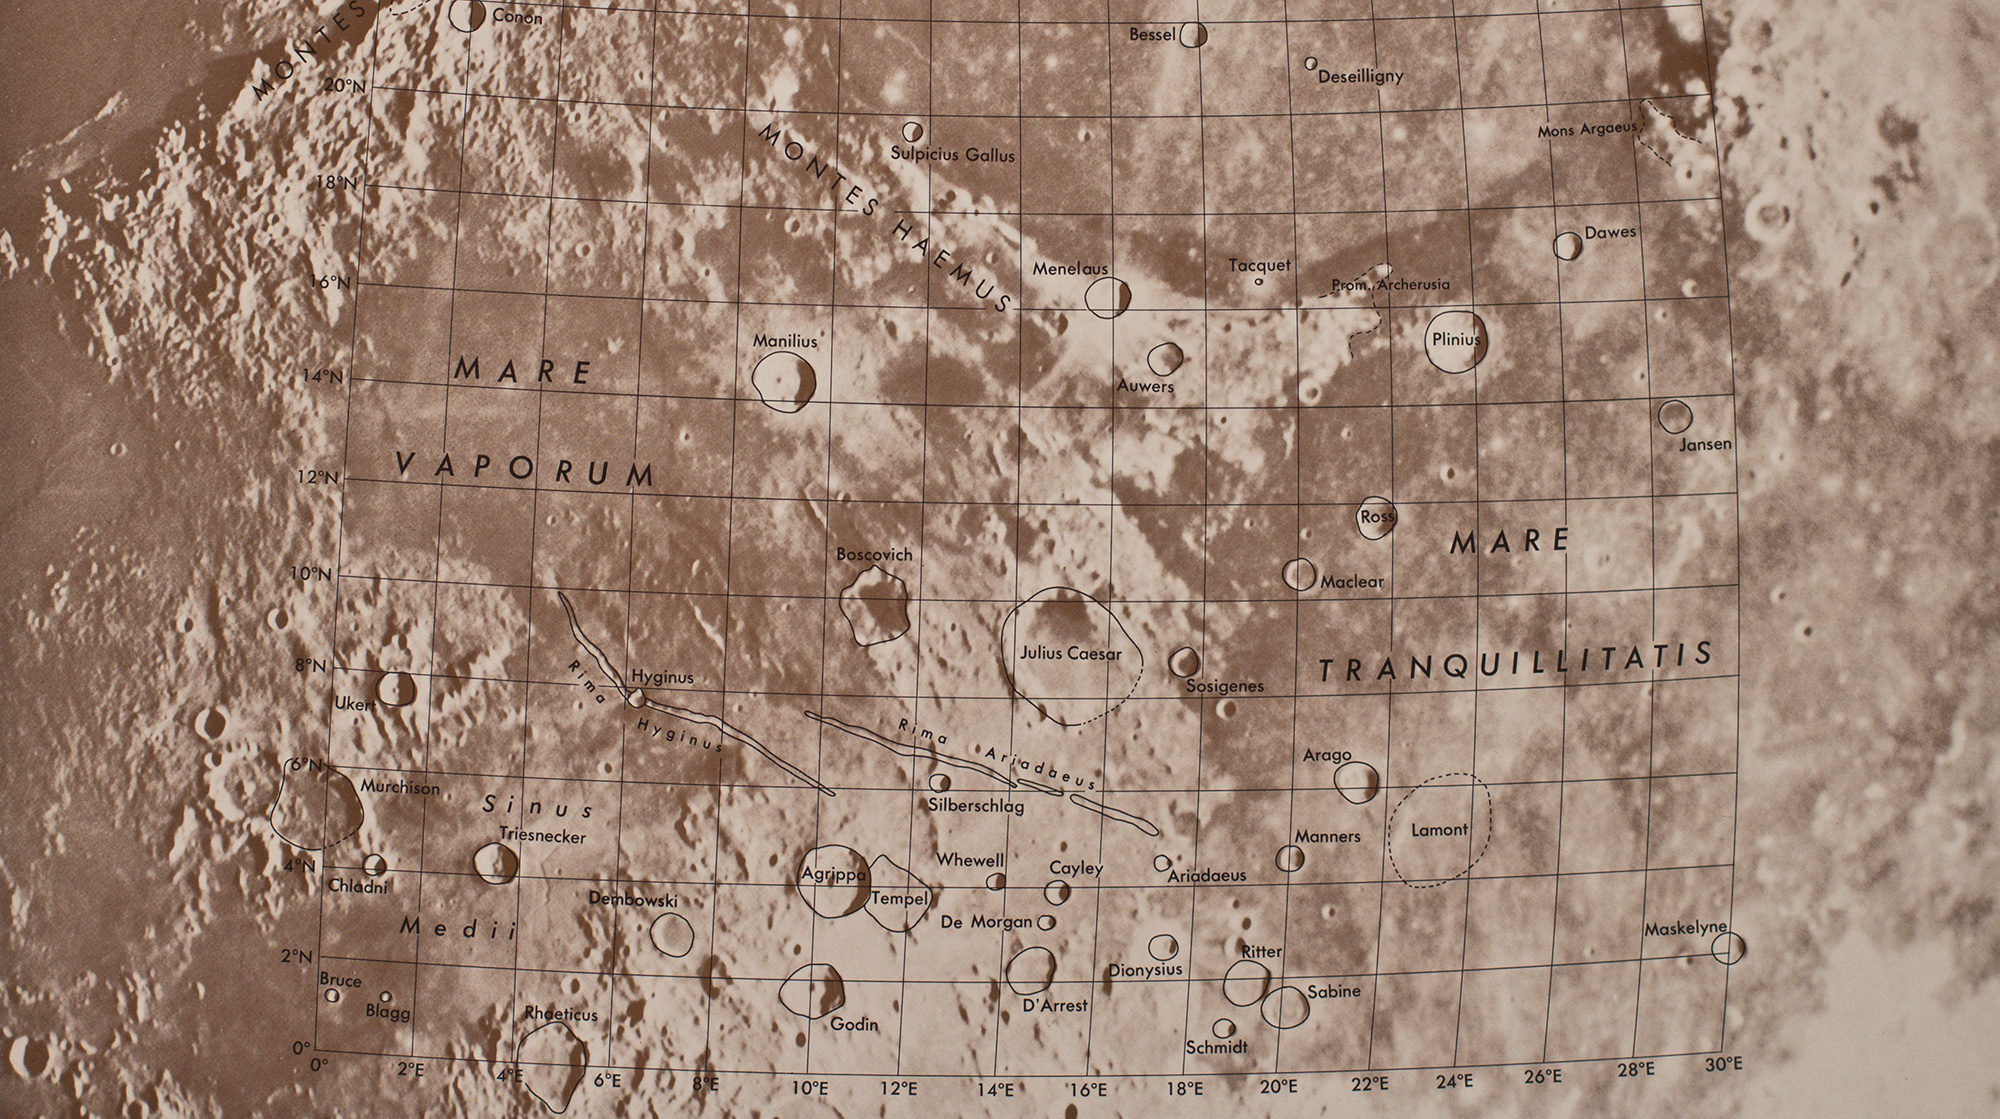 A page from the Rectified Lunar Atlas.